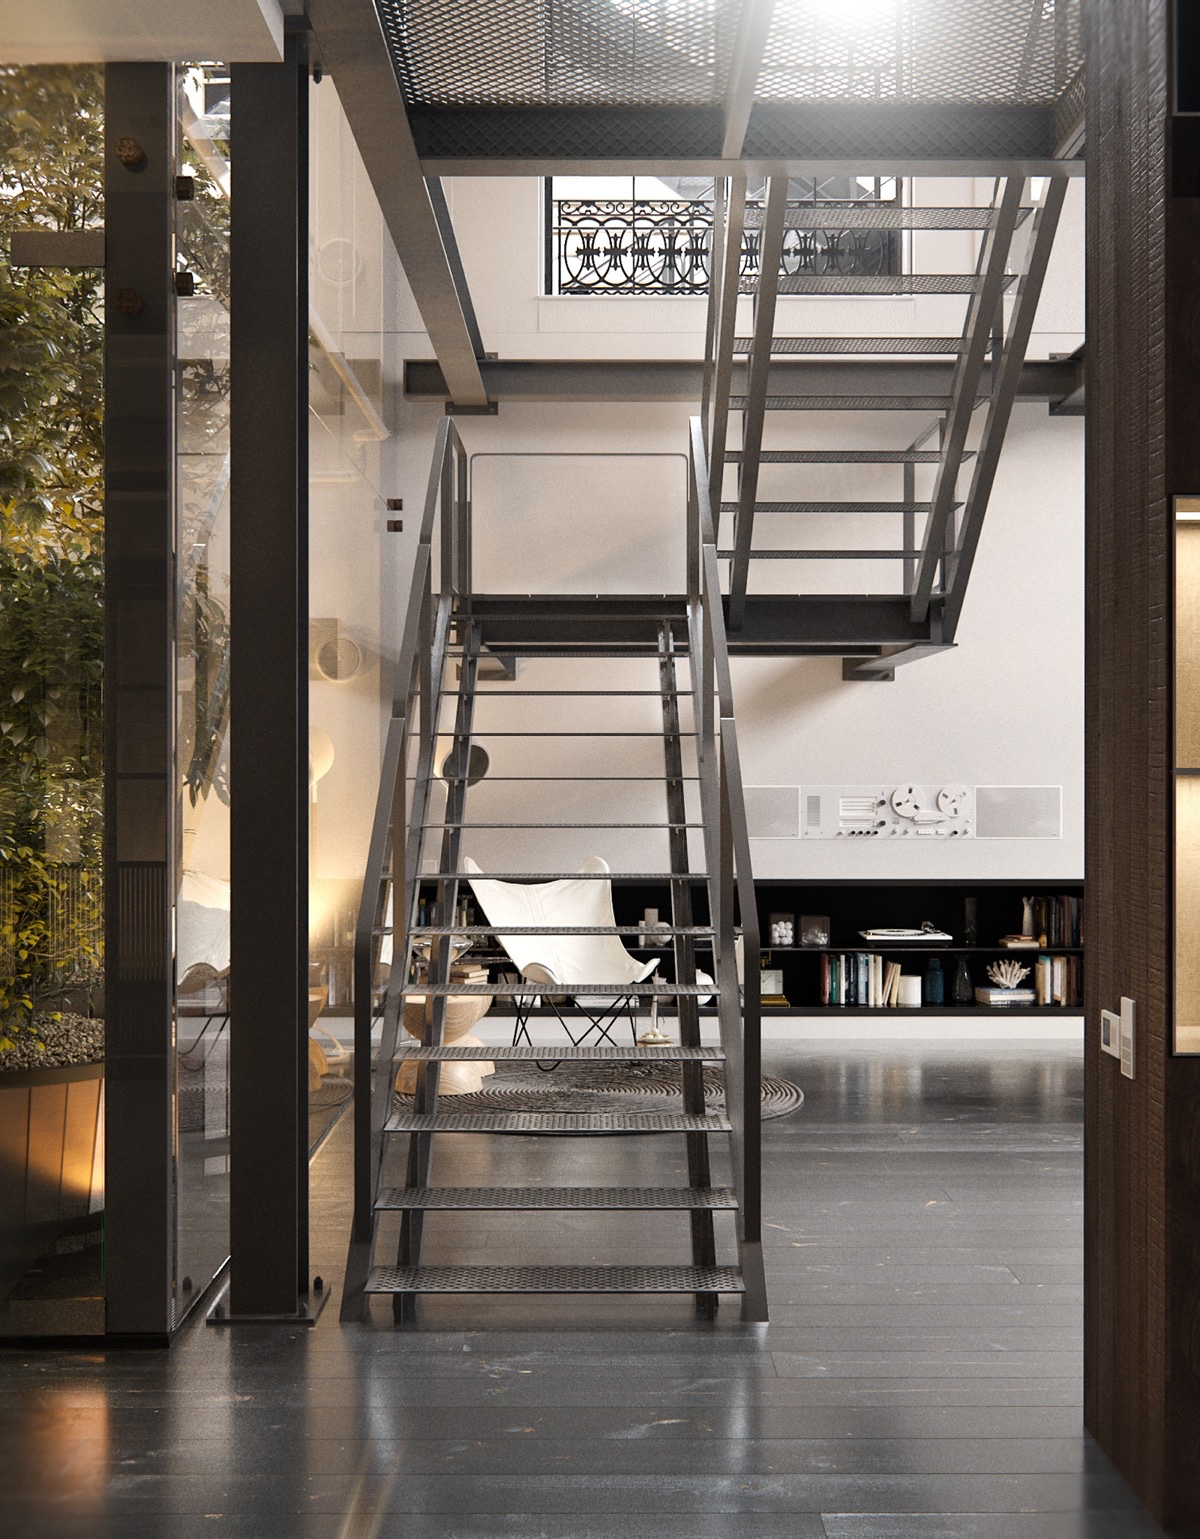 Industrail Staircase Loft - 2 chic and cozy cosmopolitan lofts